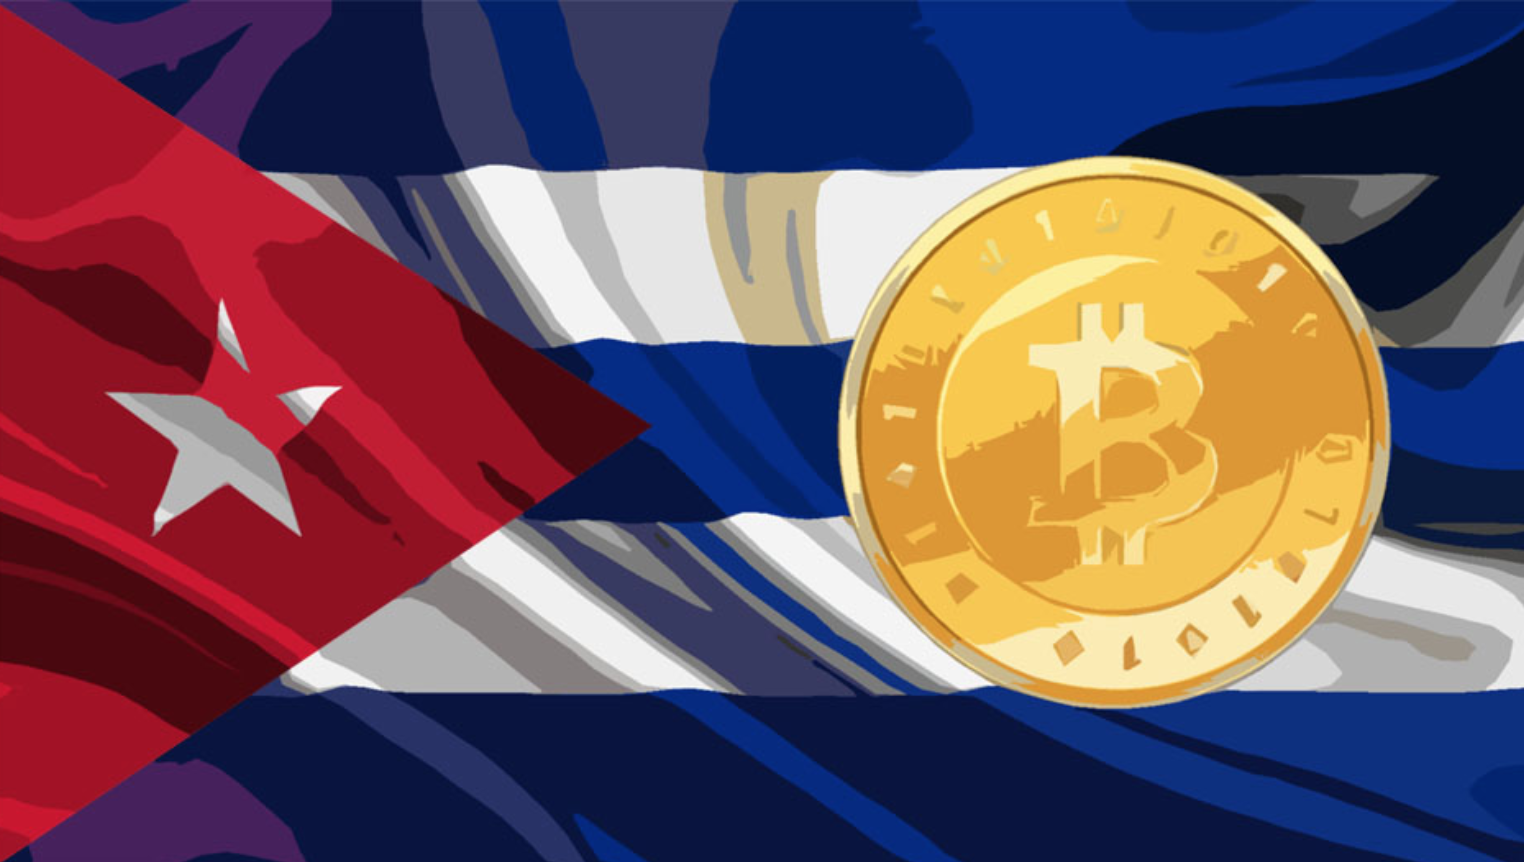 Cuba 'Studying Cryptocurrency' To Dodge US Sanctions, Says Gov't (#GotBitcoin?)